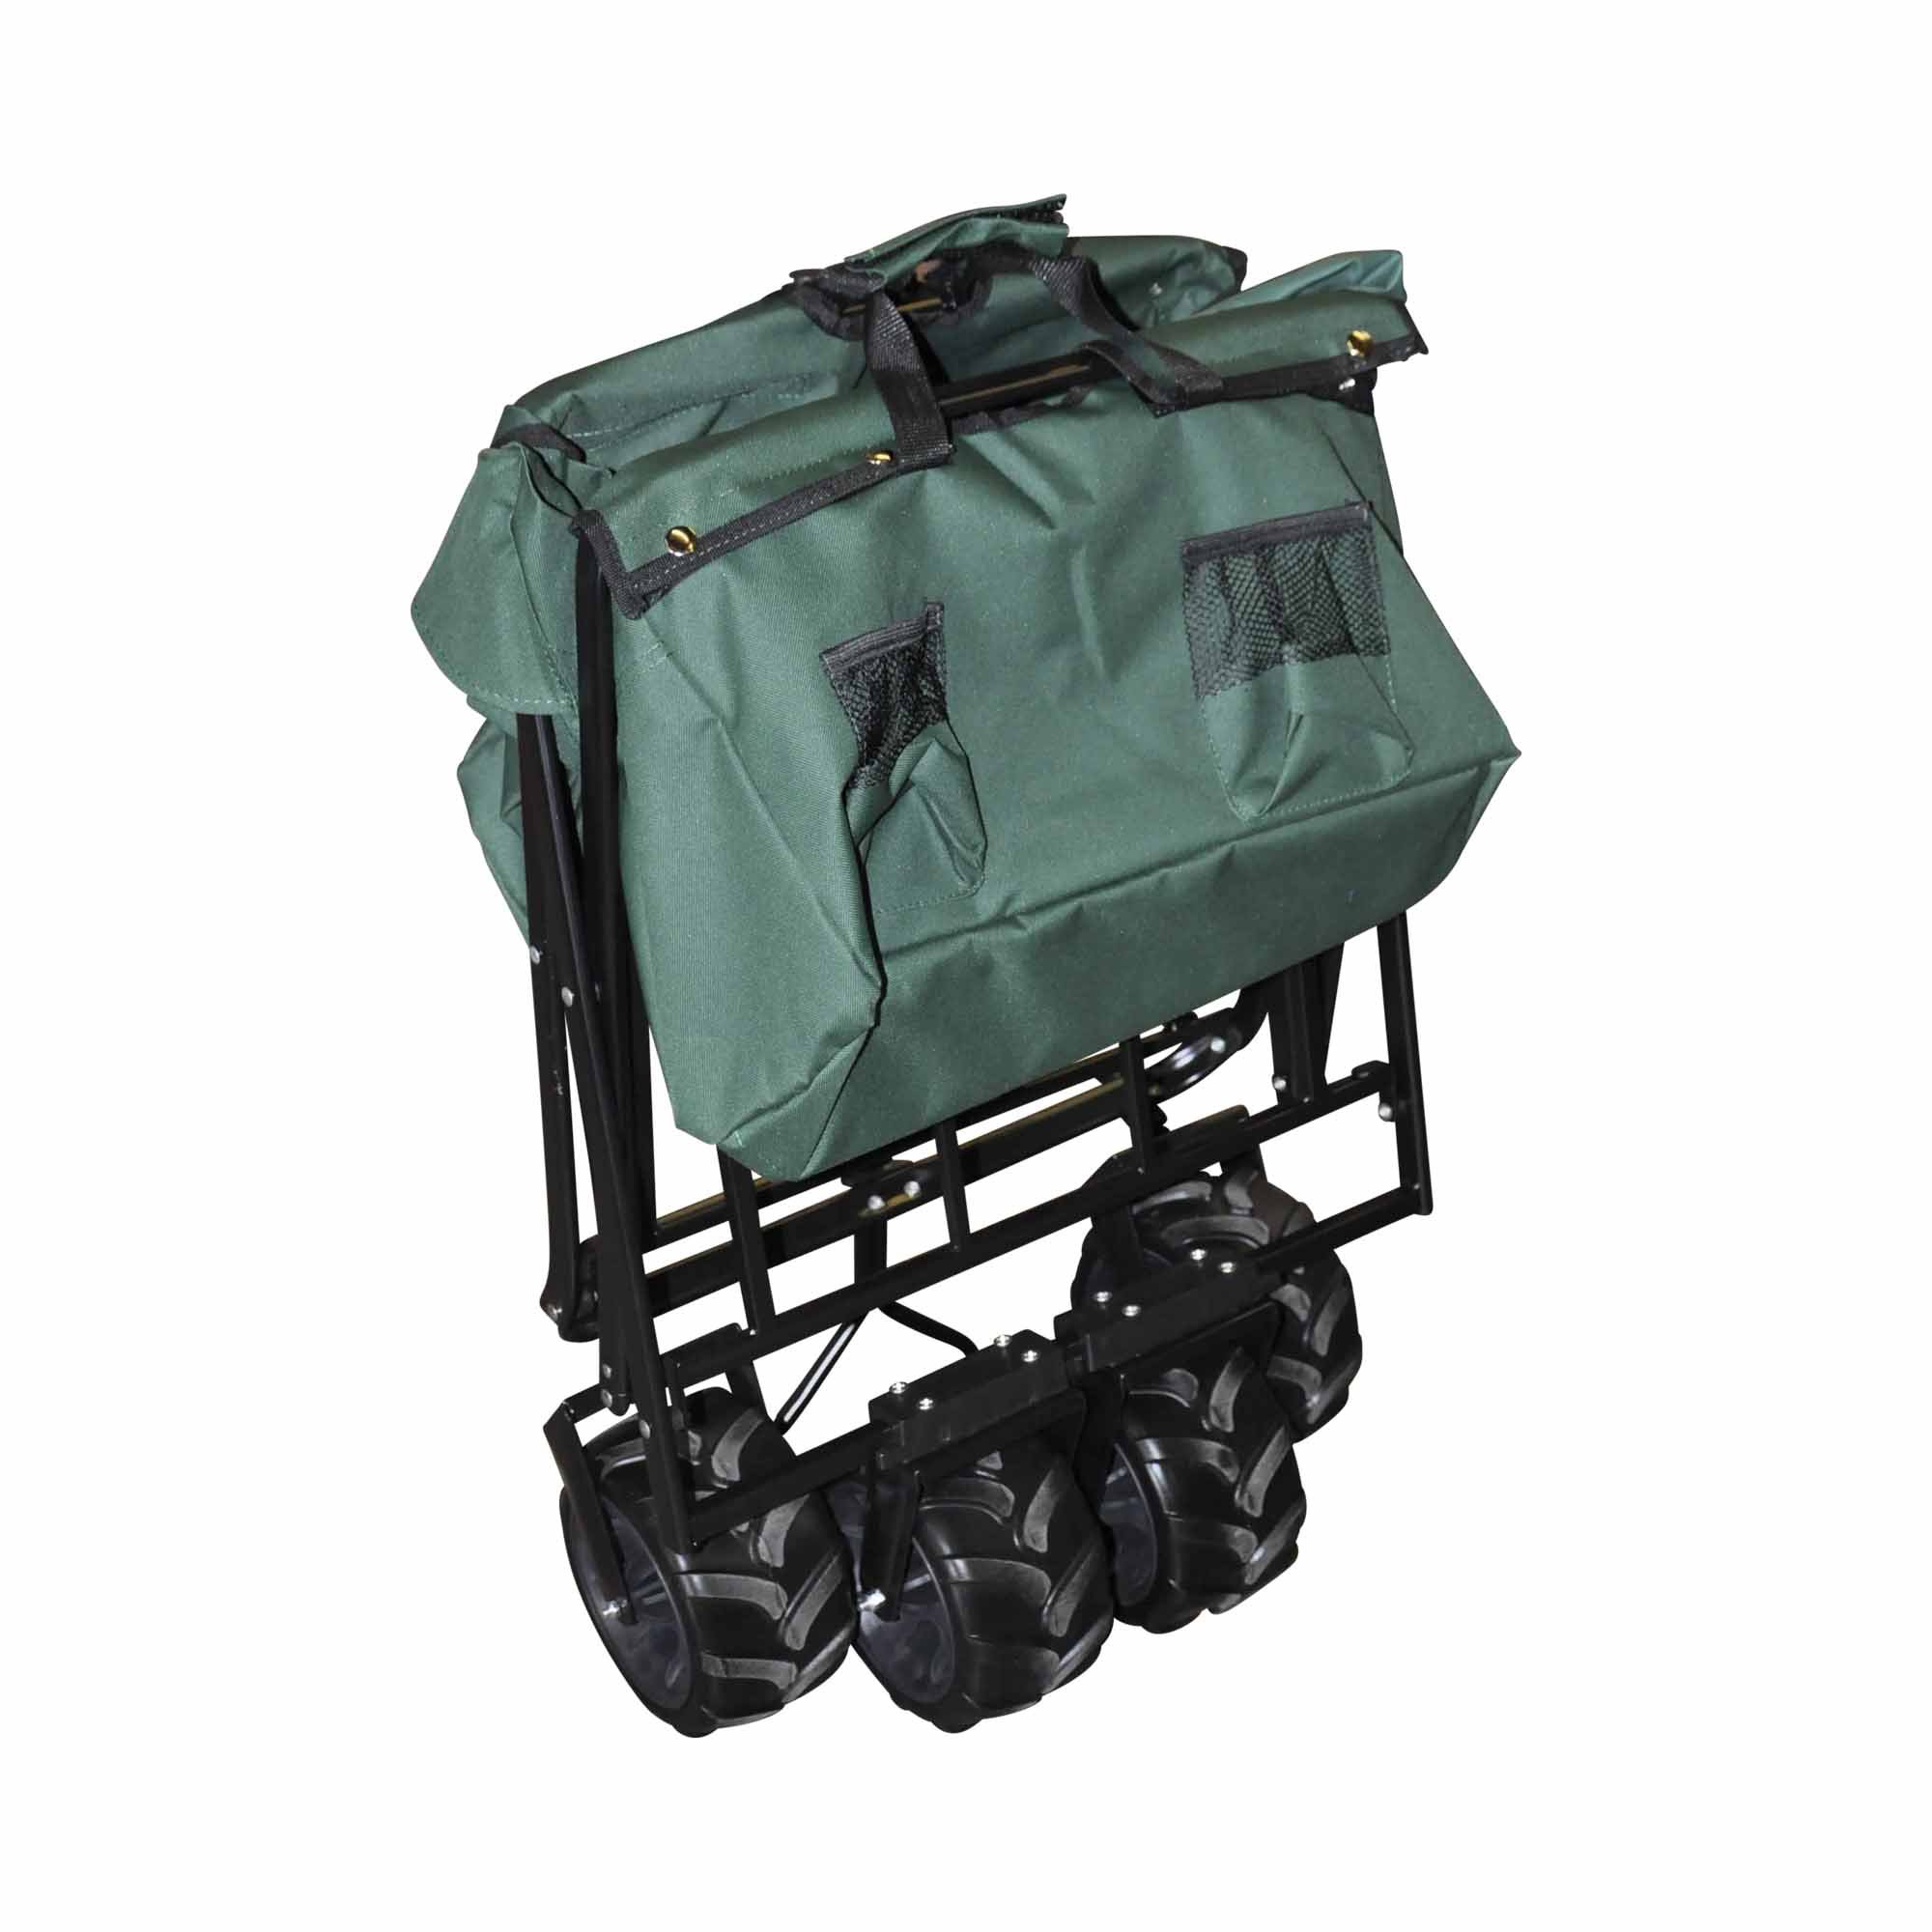 Rocket Offroad RO-UBW-GR All Terrain Collapsible Heavy Duty Folding Utility Wagon Outdoor Cart, Hunter green